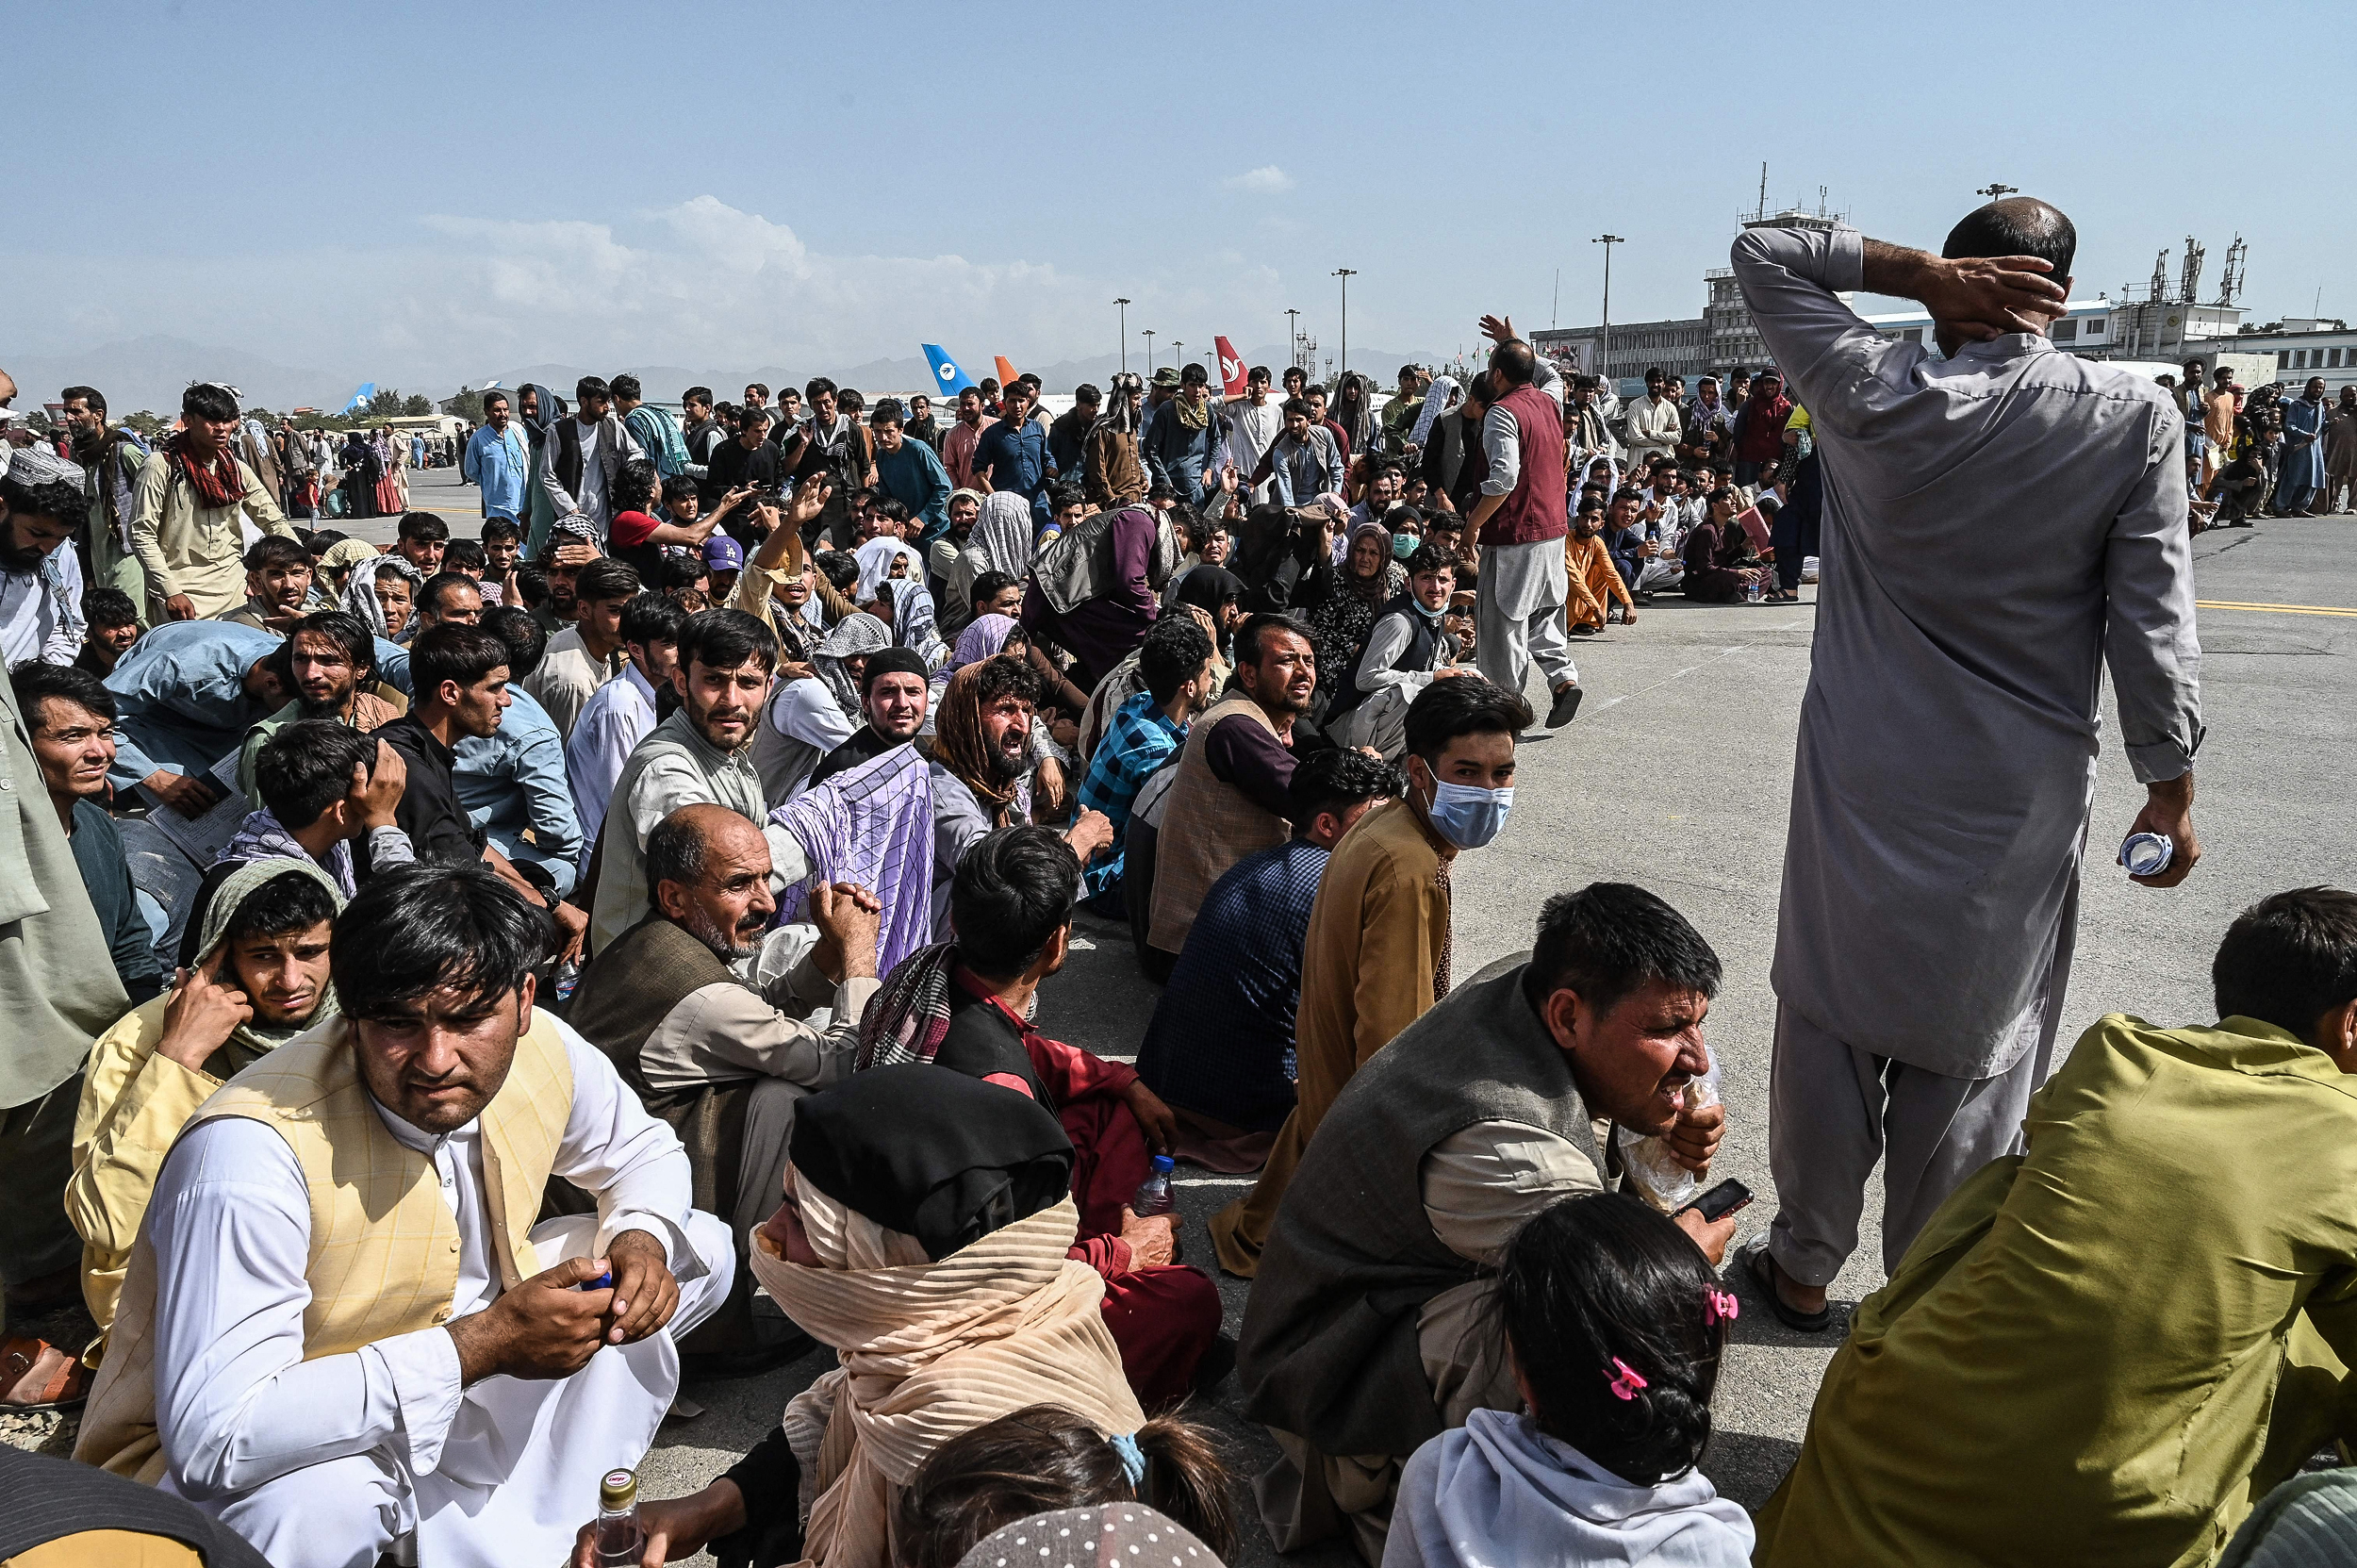 Chinese state media rips U.S. over chaotic Afghanistan exit